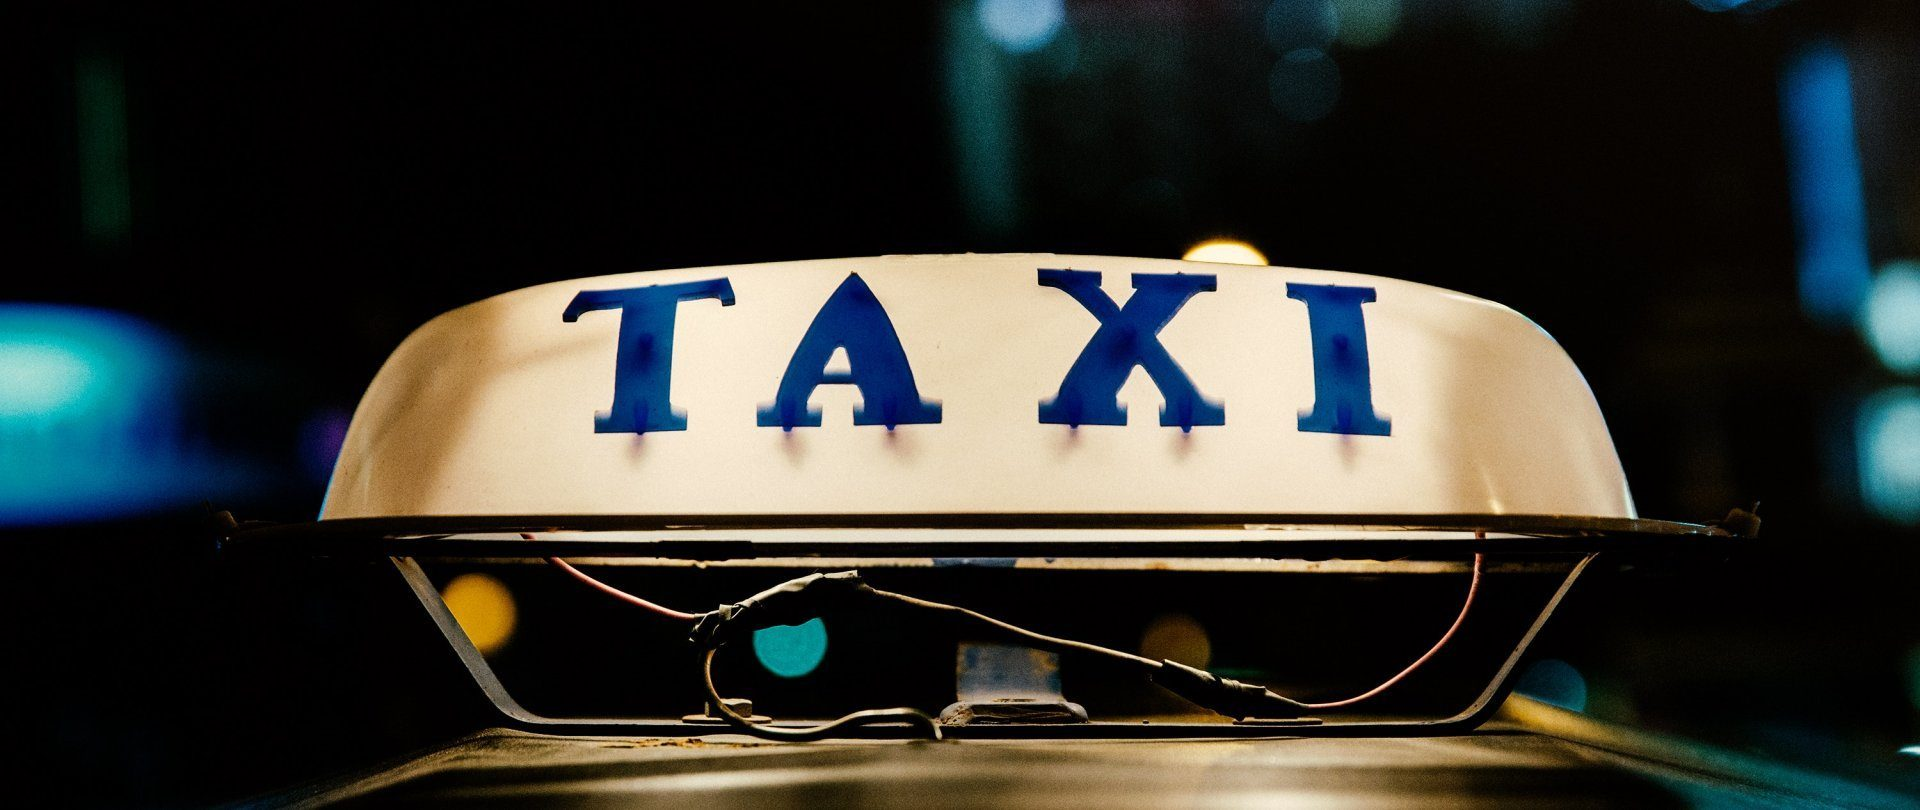 Transfer tours – Taxi